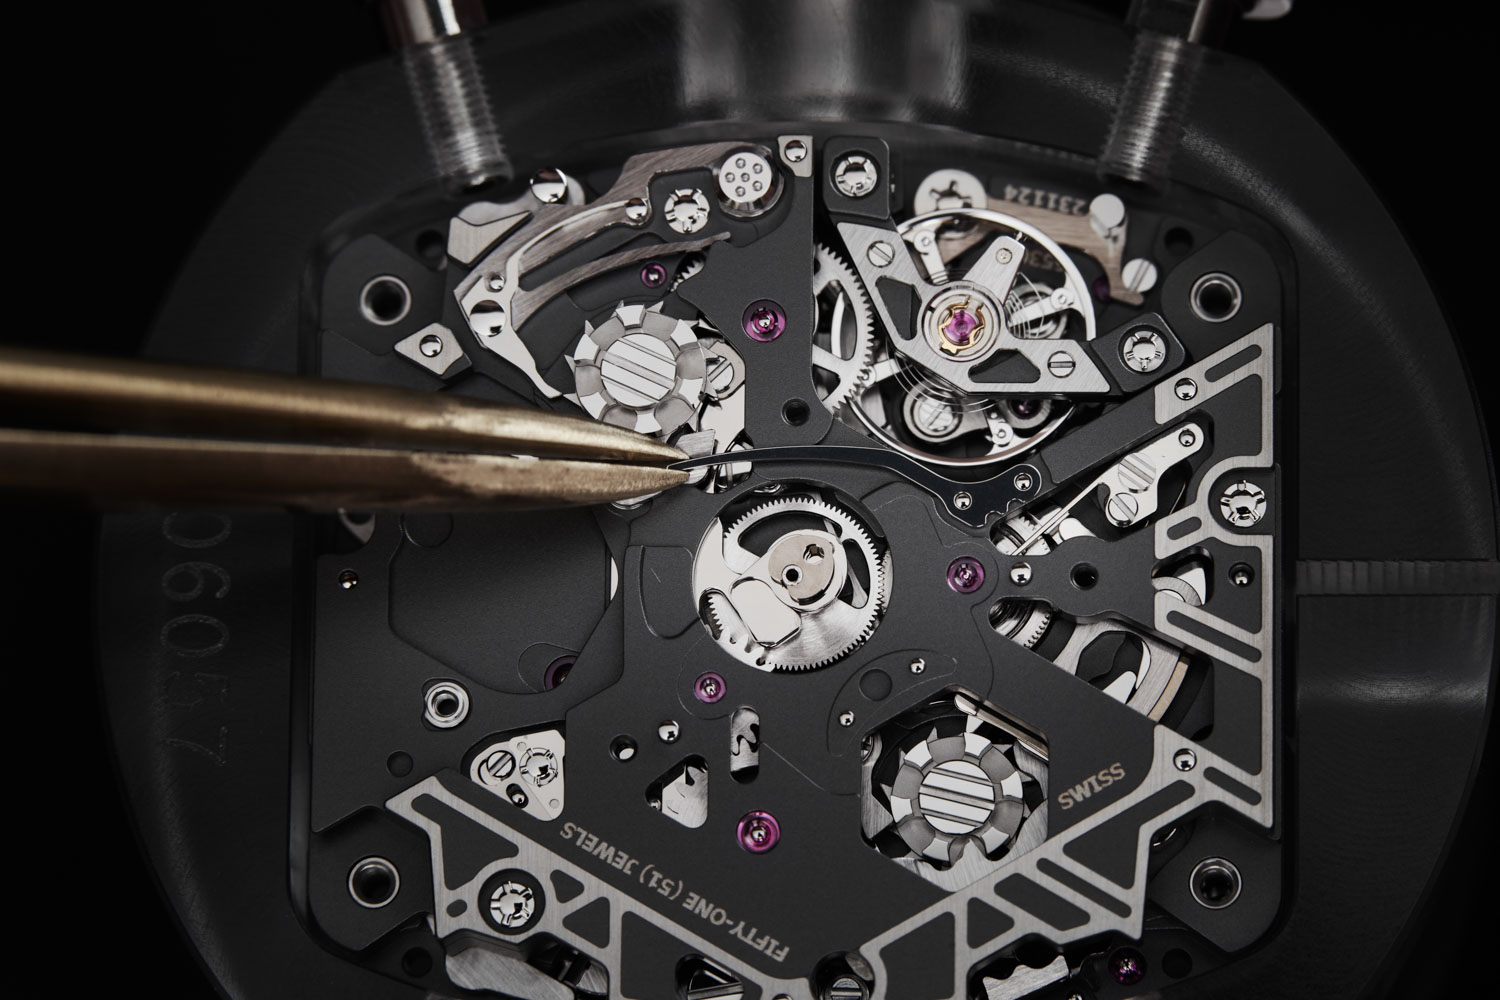 Seeing is believing, the RMAC4, although based off the VMF 6710, looks nothing like it and features a split seconds function, a rapid winding pusher that can fully wind the movements barrel with 125 pushes and a variable inertia/geometry rotor that can be set up to correspond to the owner's level of energy output; the RMAC4 also has every bridge made out of grade 5 titanium before it is fully skeletonized